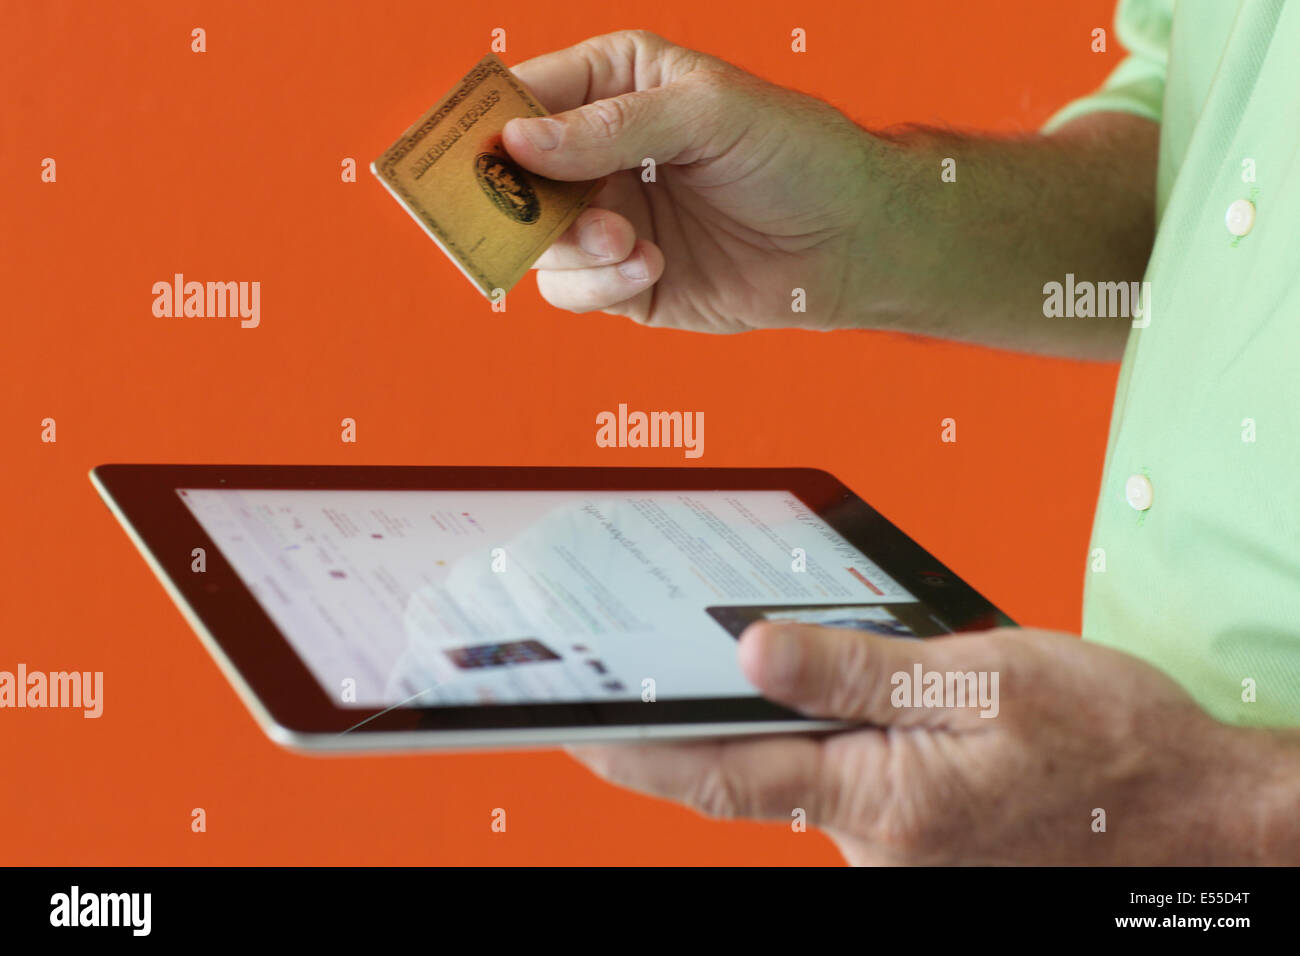 consumer with credit card - Stock Image